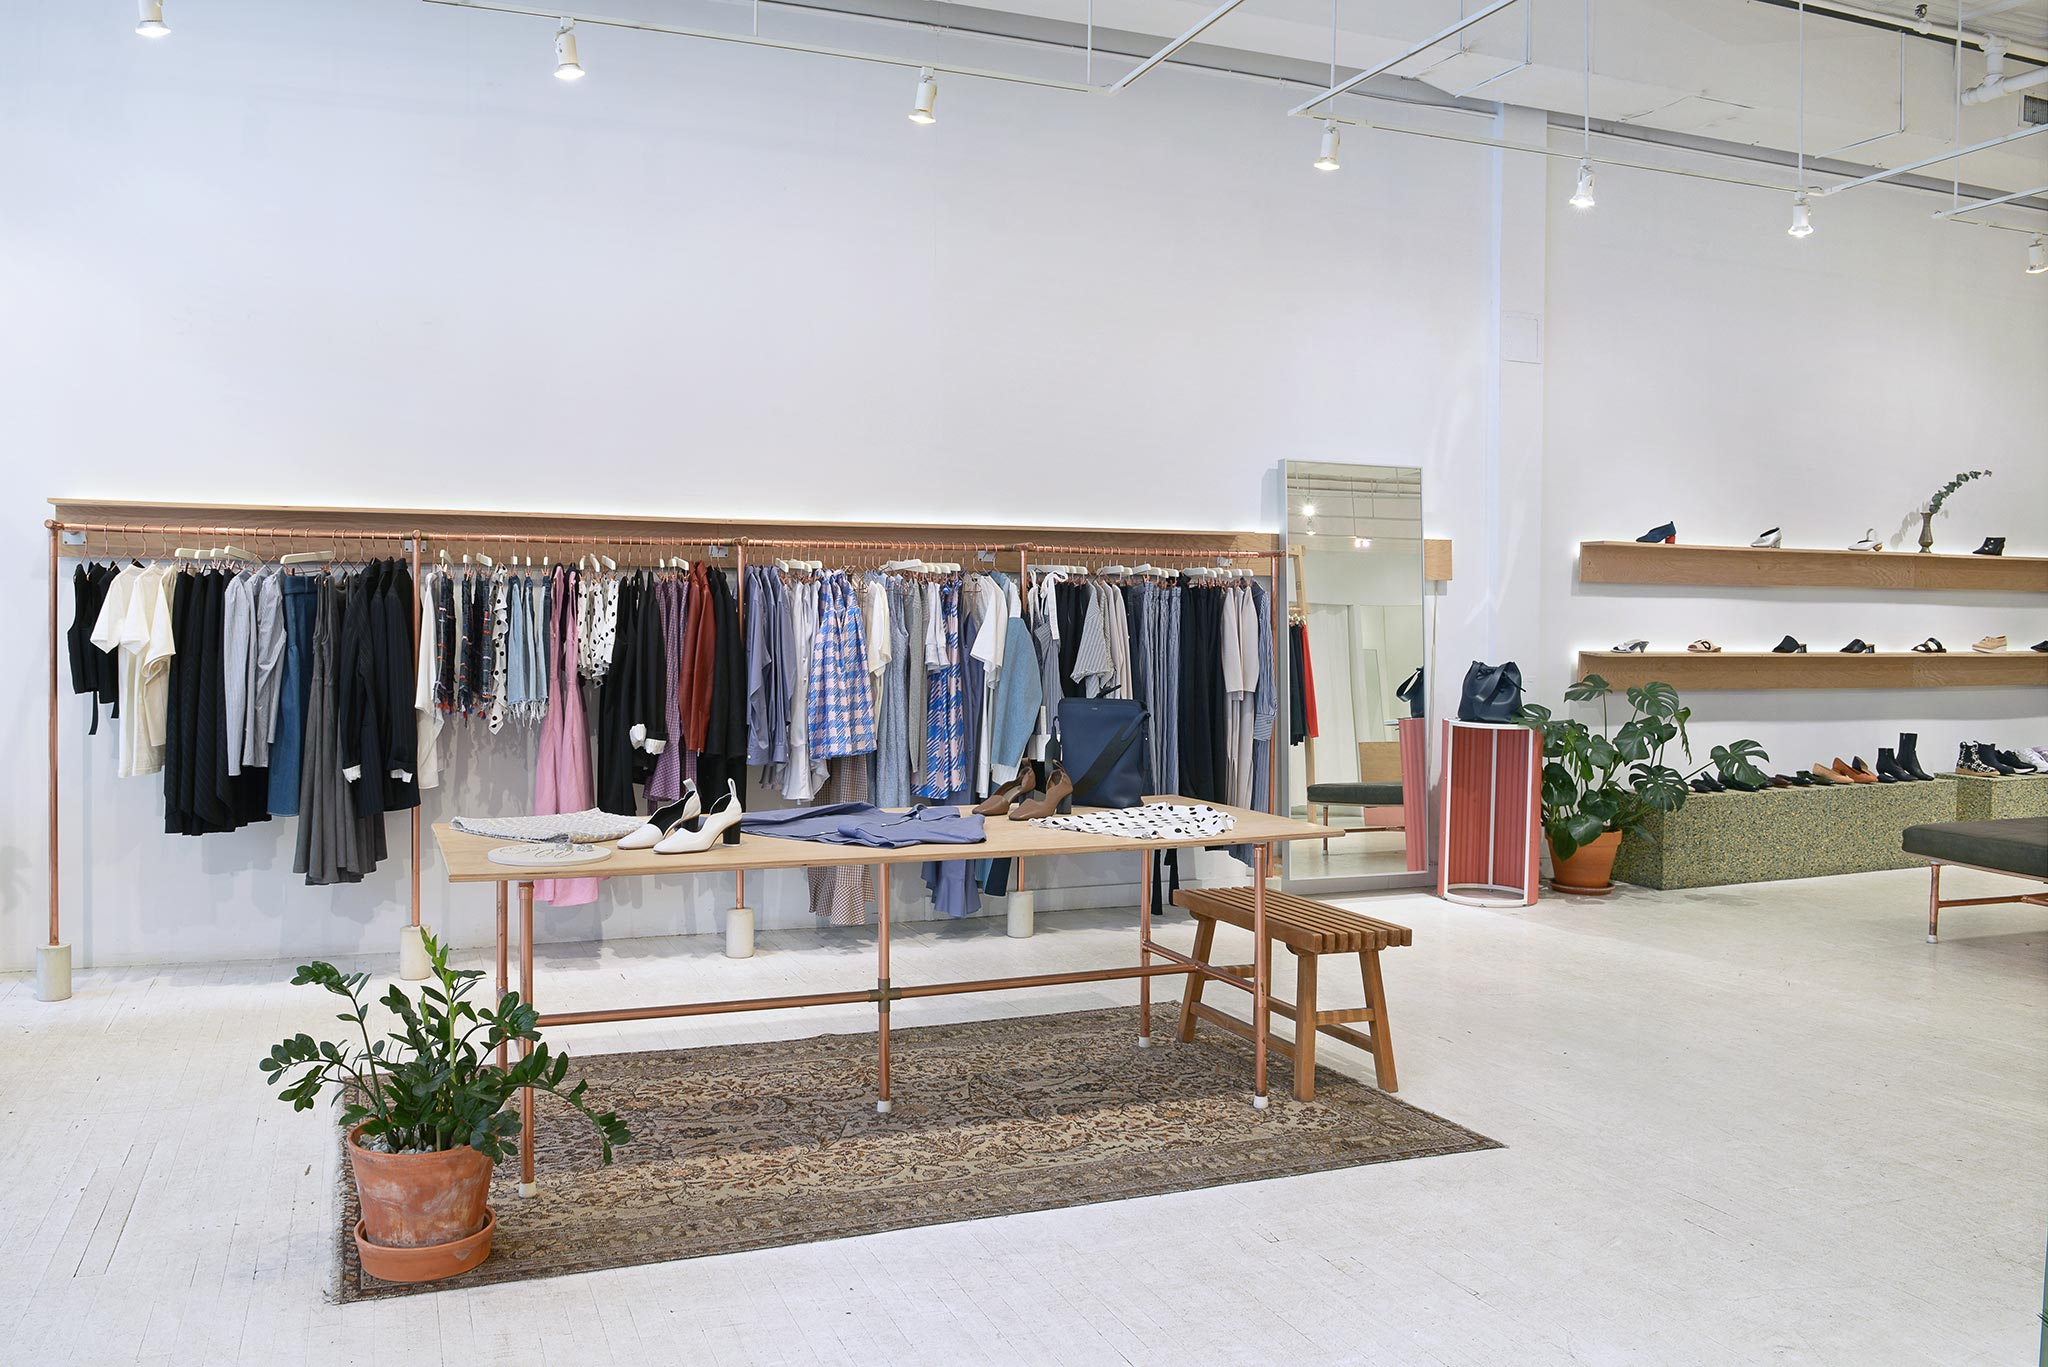 0bbadd5cac974 ANTHOM SoHo | SoHo New York Women's Clothing Boutique